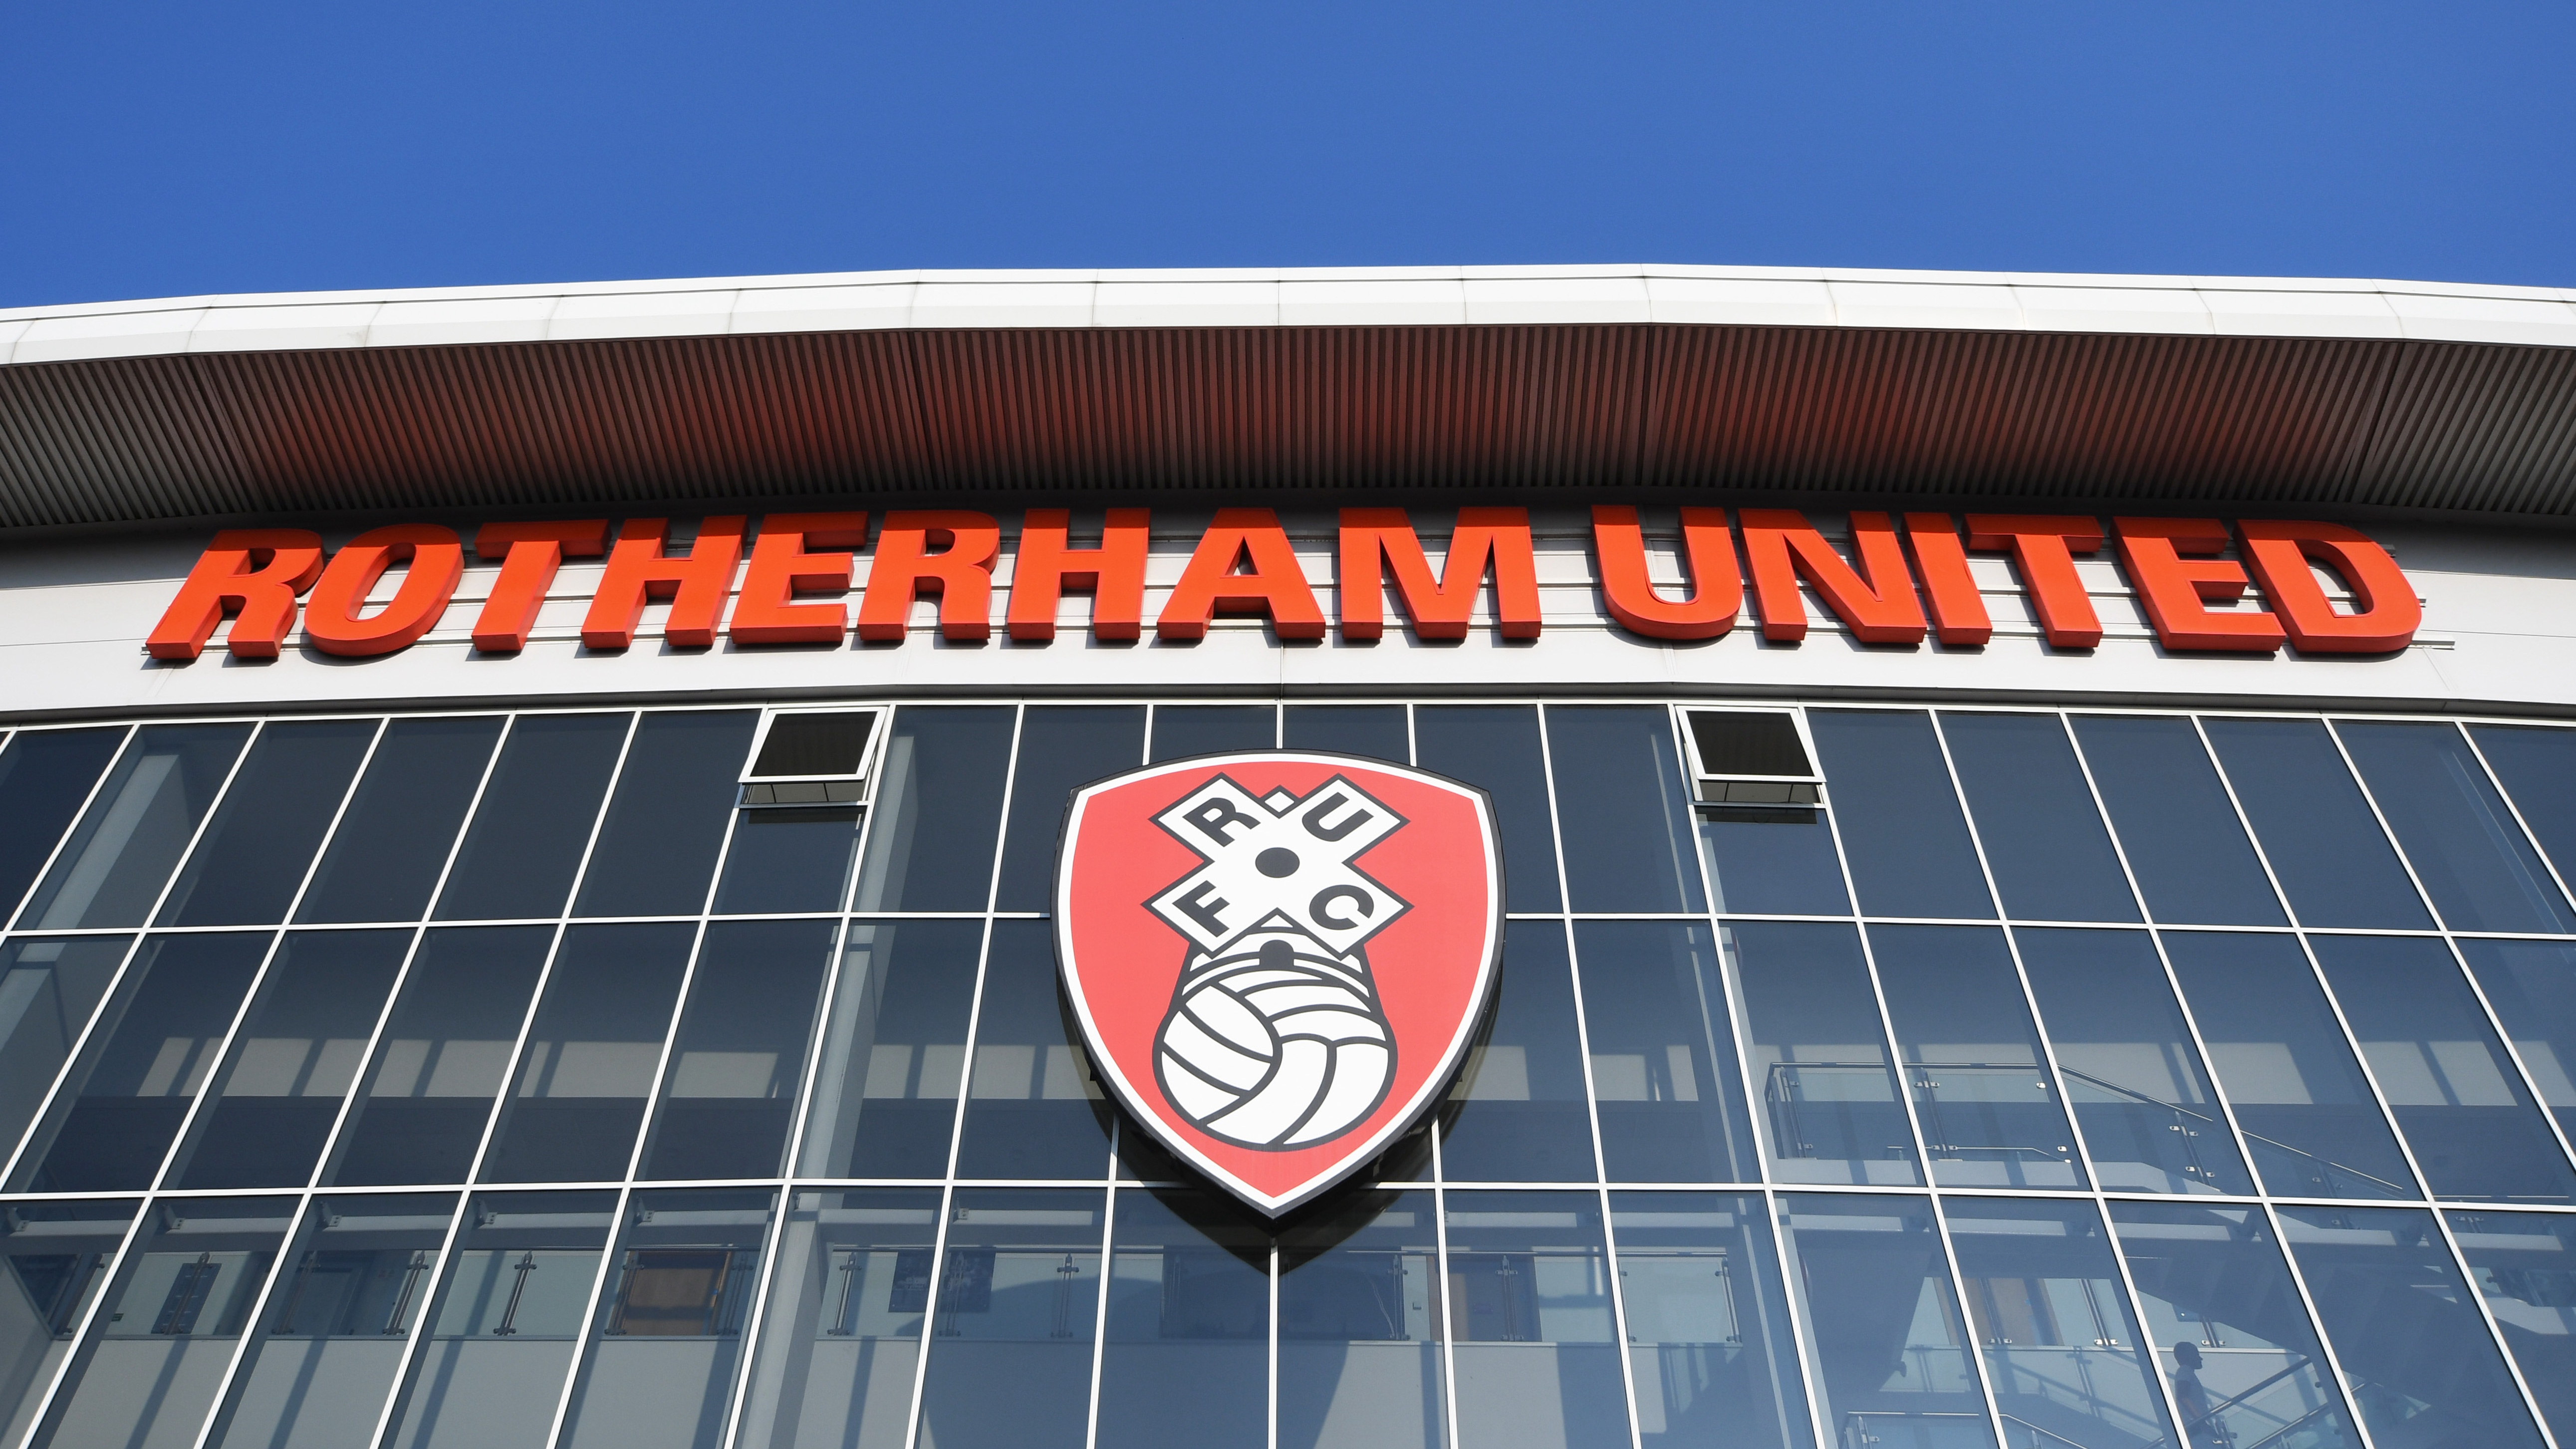 Rotherham United: Information for away supporters